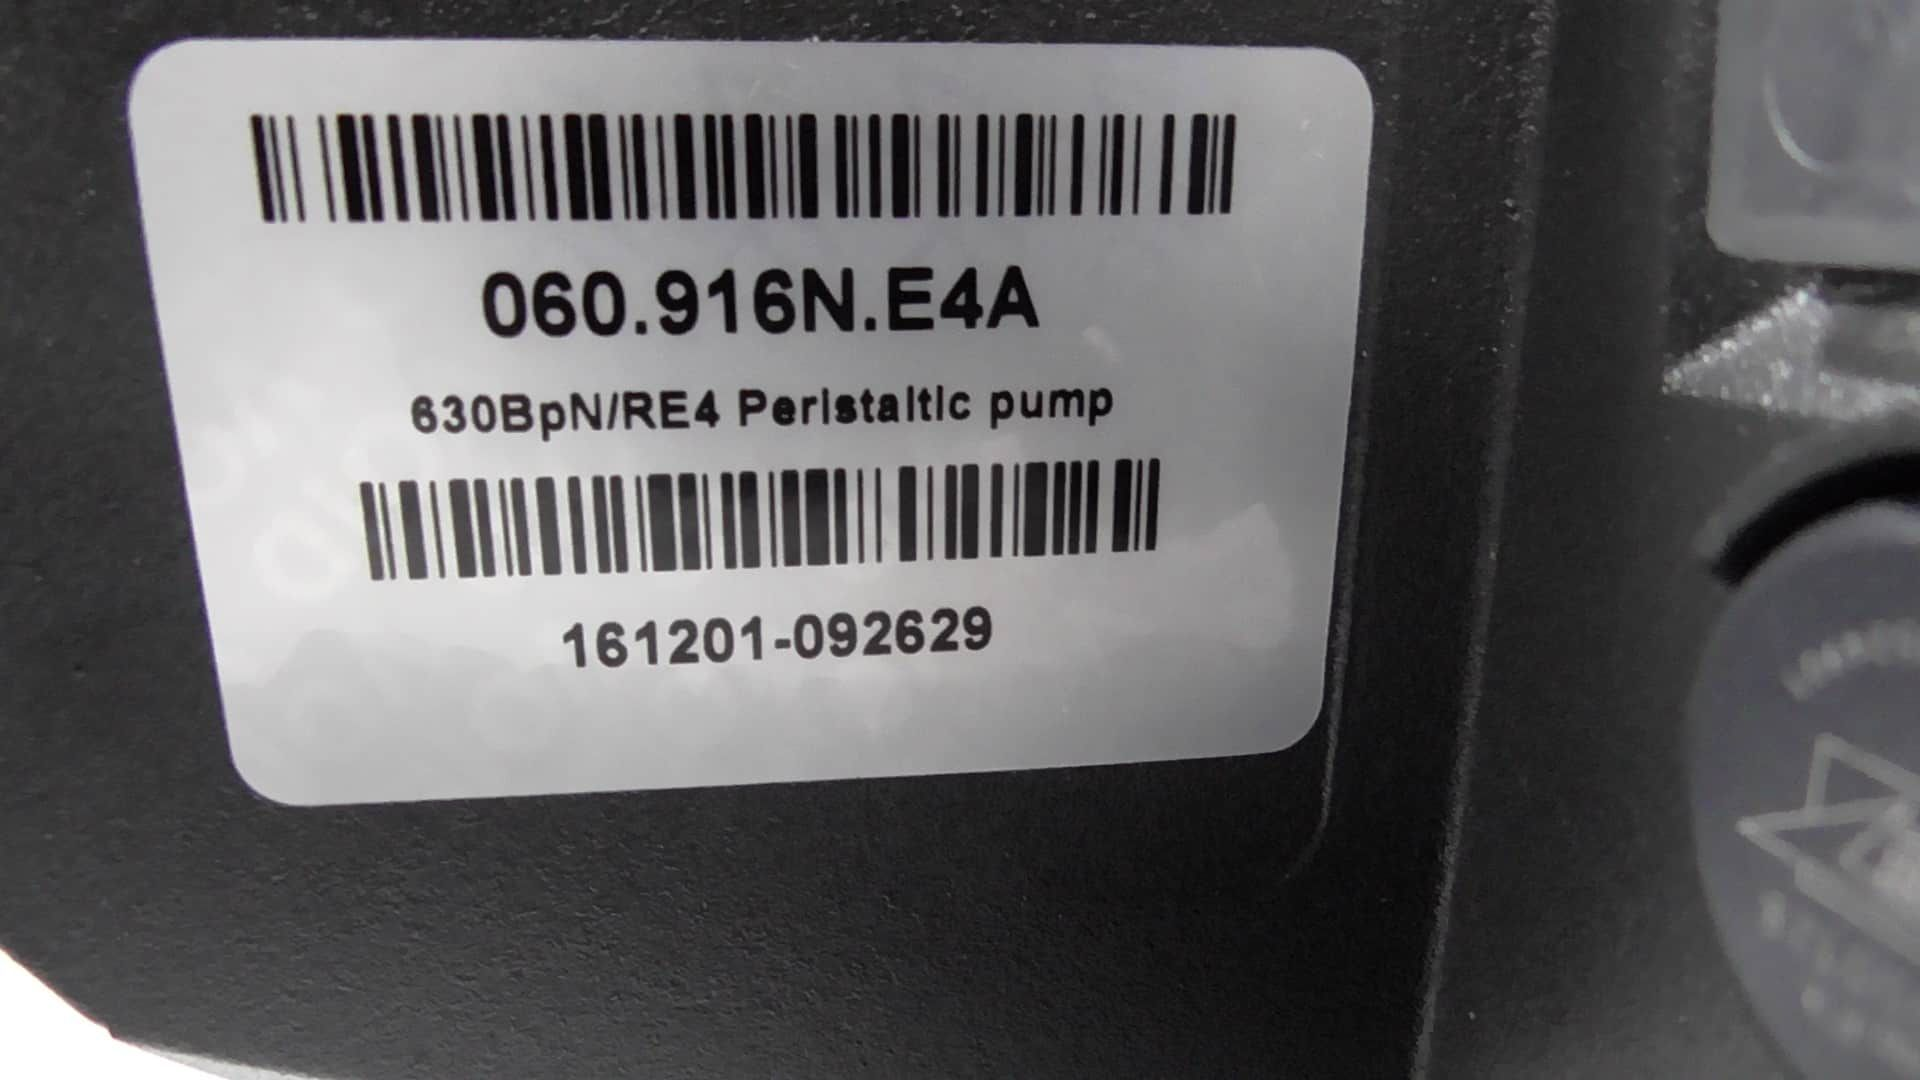 Watson Marlow 630BpN/RE4 Peristaltic Pump in LIKE NEW Condition